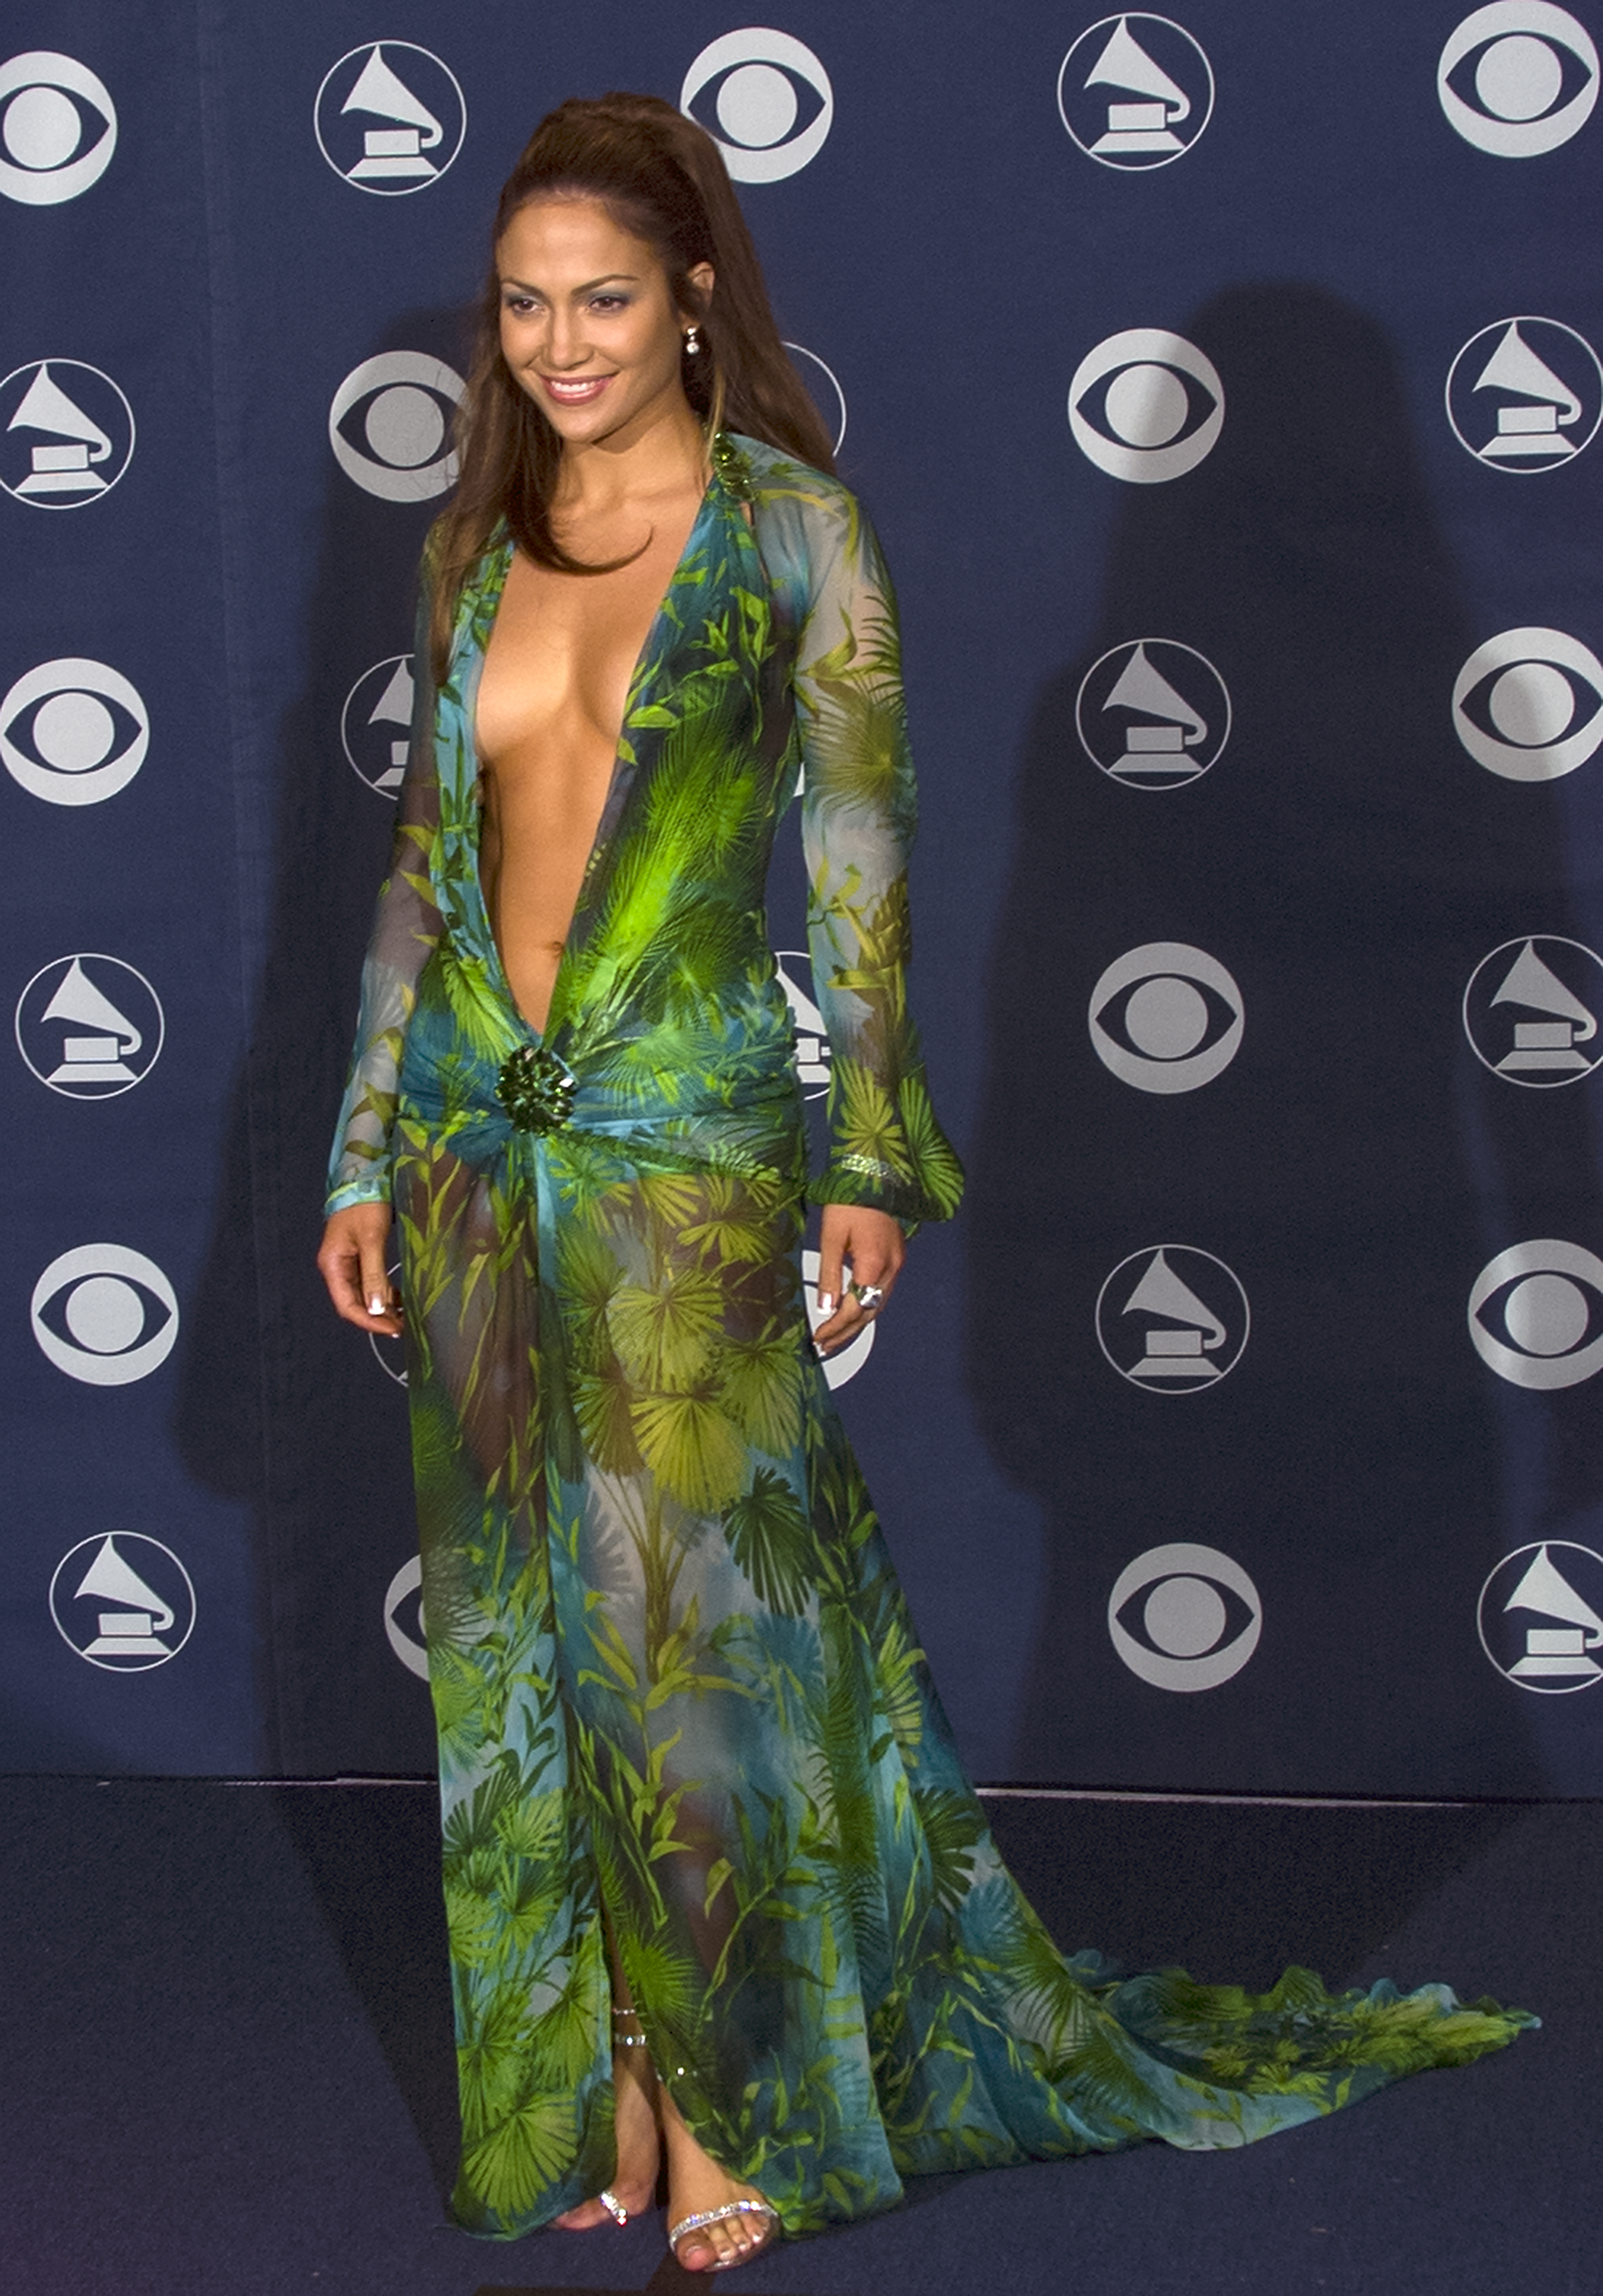 LOS ANGELES - FEBRUARY 23:  Singer Jennifer Lopez backstage at the 42nd Annual Grammy Awards, February 23, 2000 in Los Angeles, California. (Photo by Bob Riha, Jr./Getty Images)